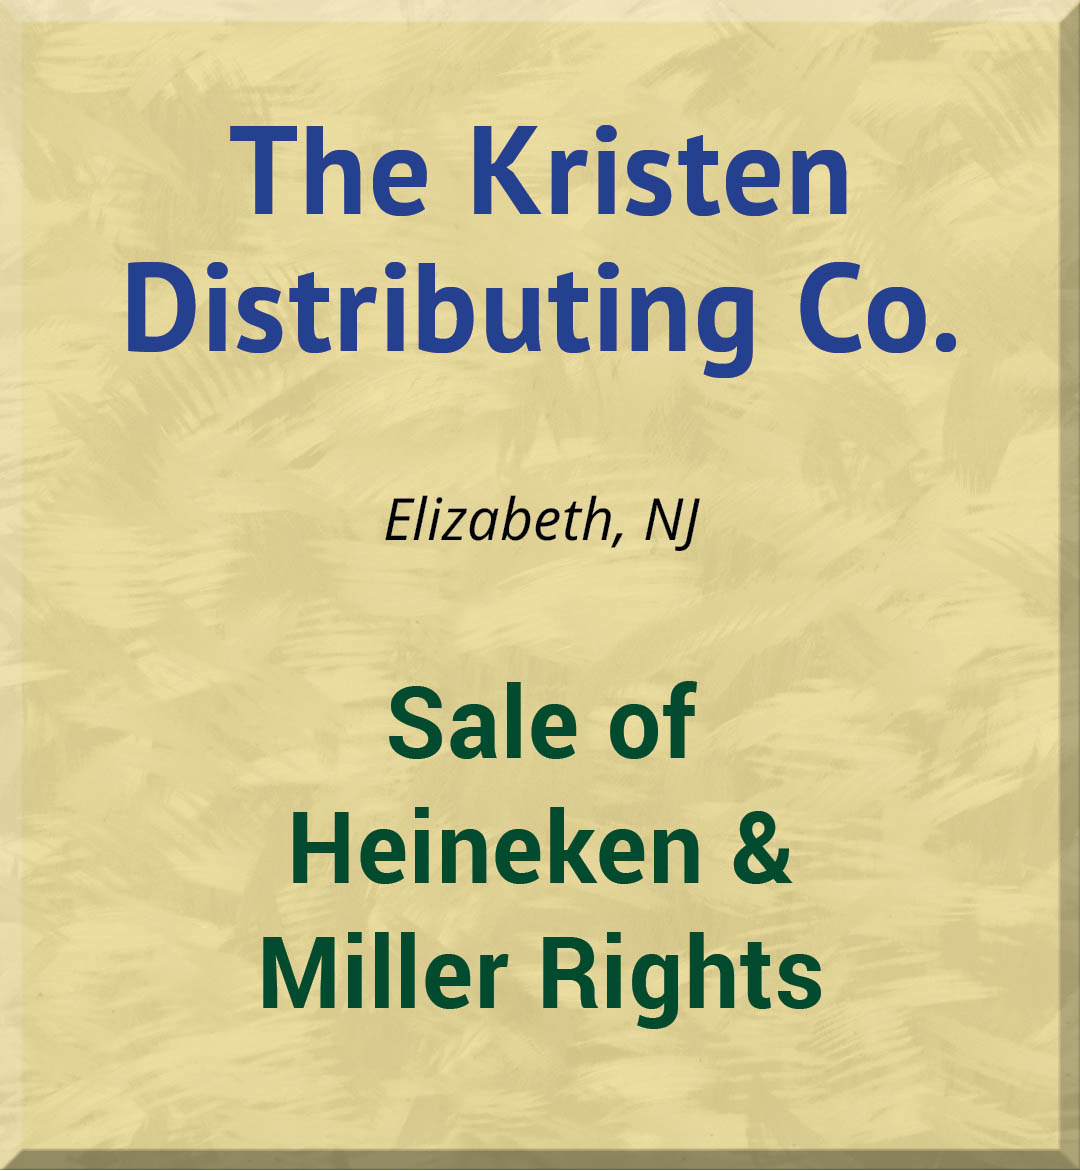 The Kristen Distributing Co.